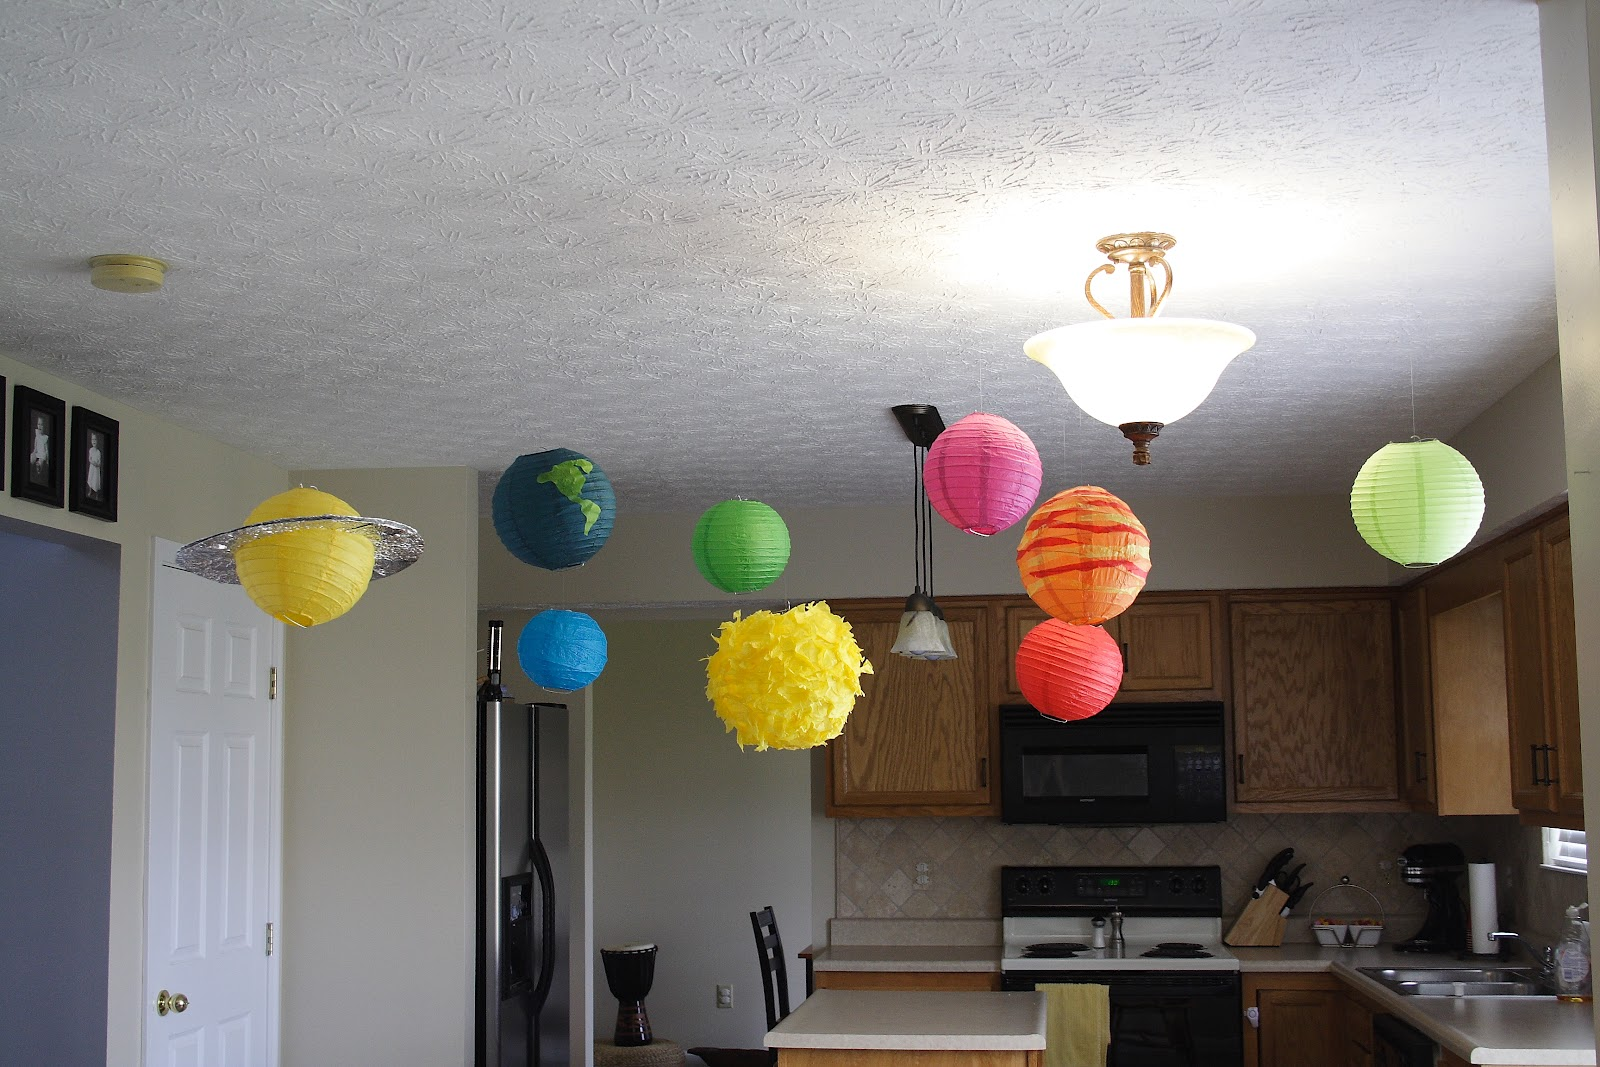 Planets to hang from ceiling pics about space - Hanging planets decorations ...